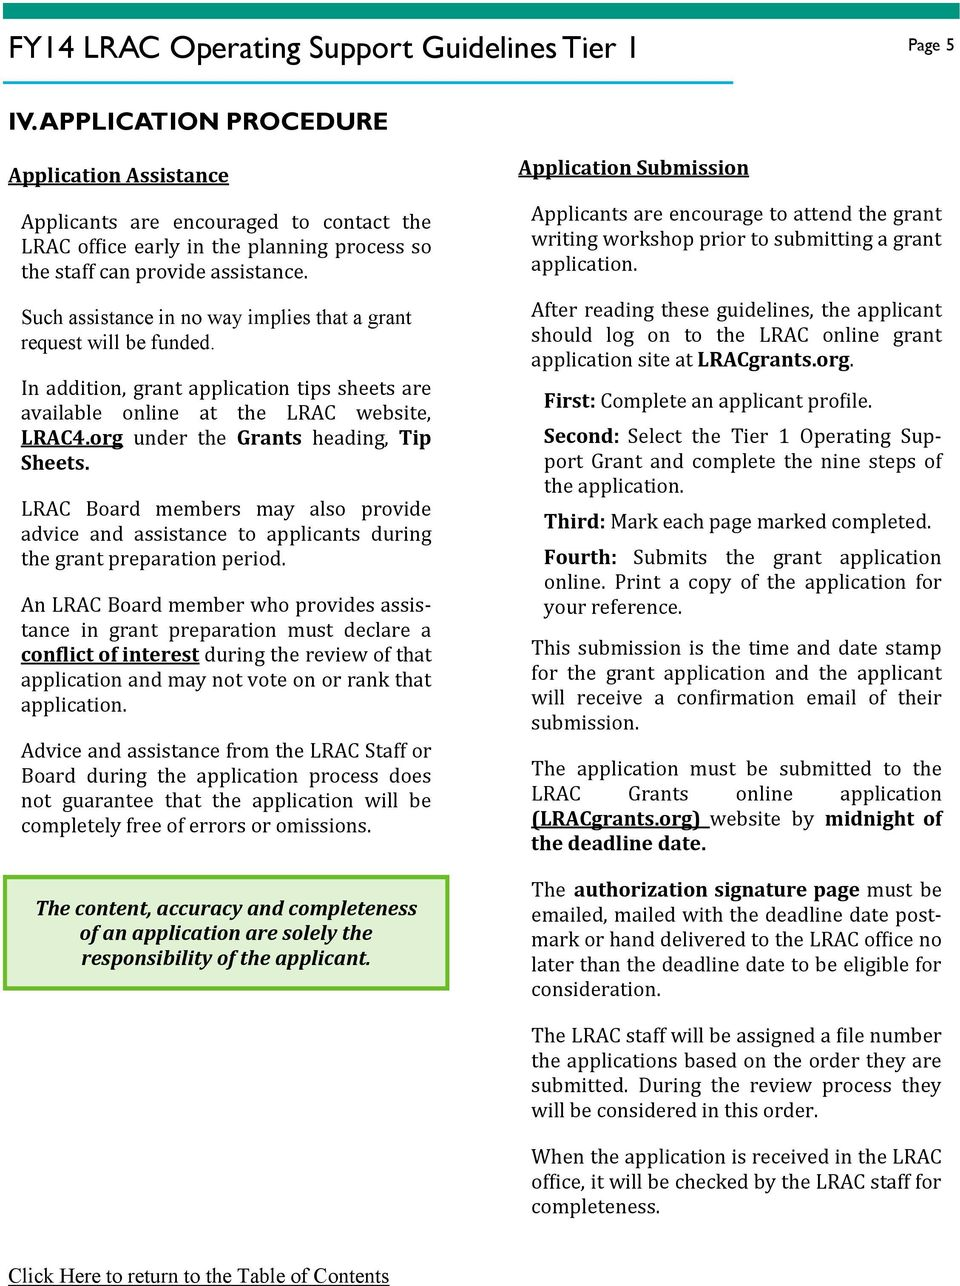 org under the Grants heading, Tip Sheets. LRAC Board members may also provide advice and assistance to applicants during the grant preparation period.